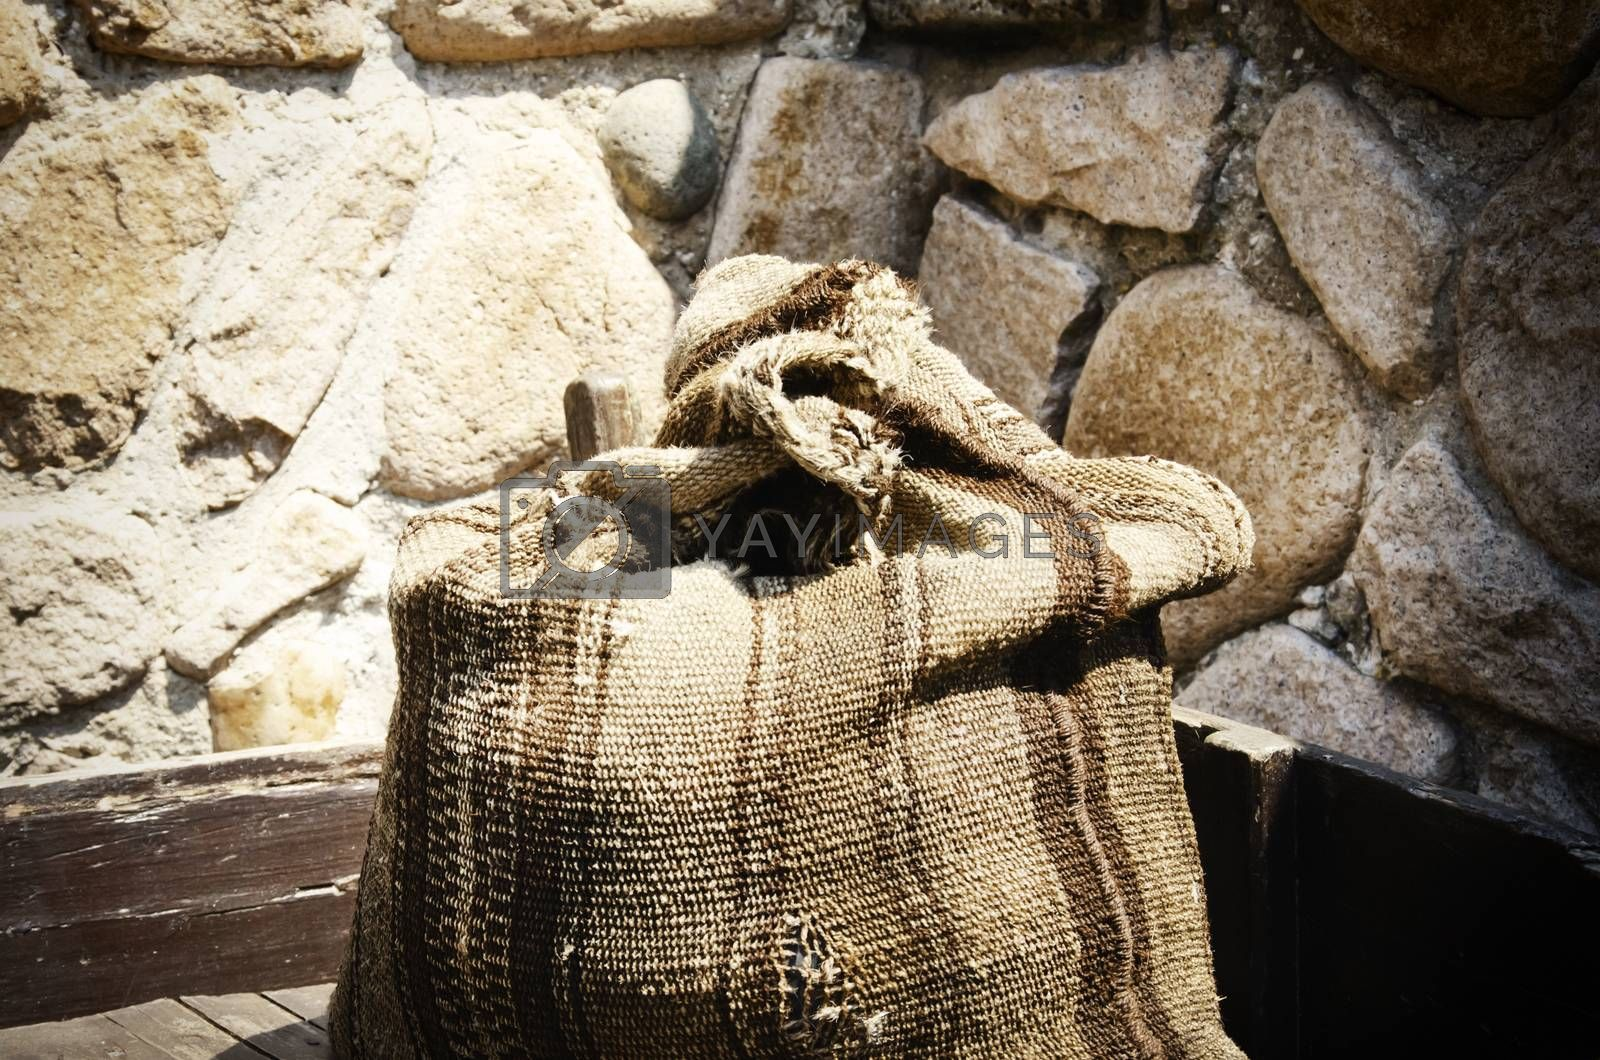 Old Sack by razvodovska